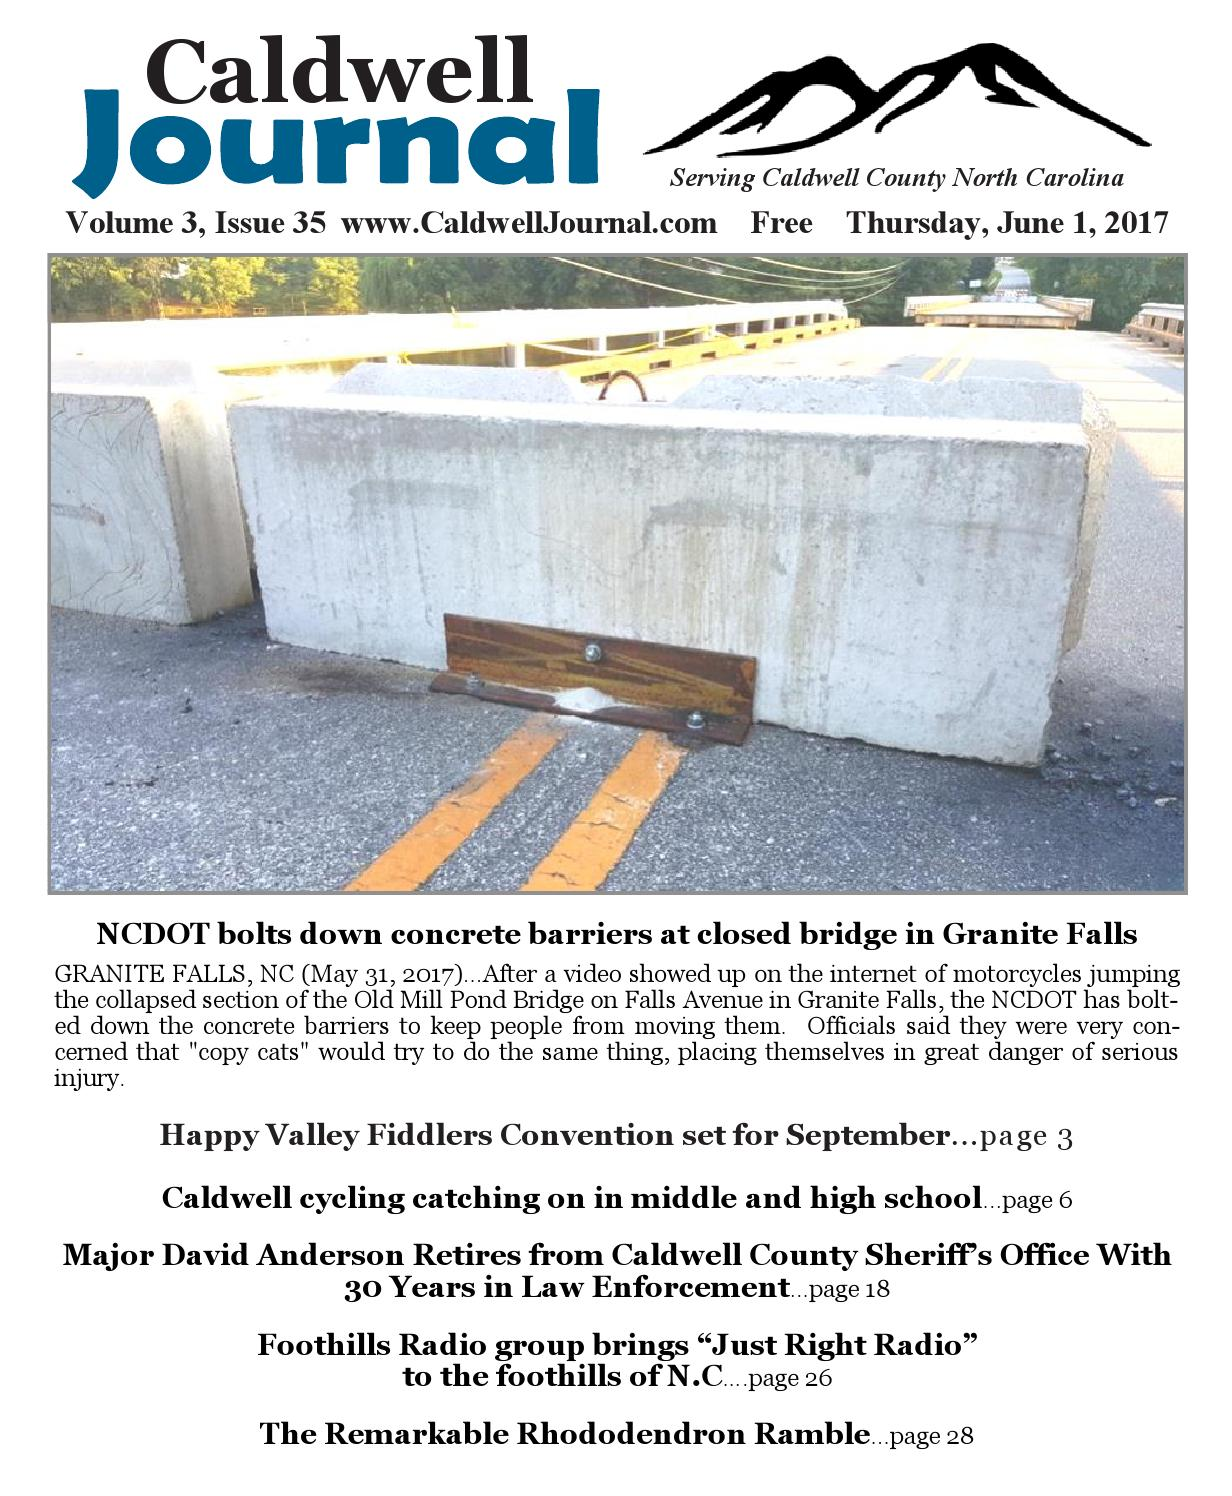 Caldwell Journal 06 01 2017 By Caldwell Journal   Issuu